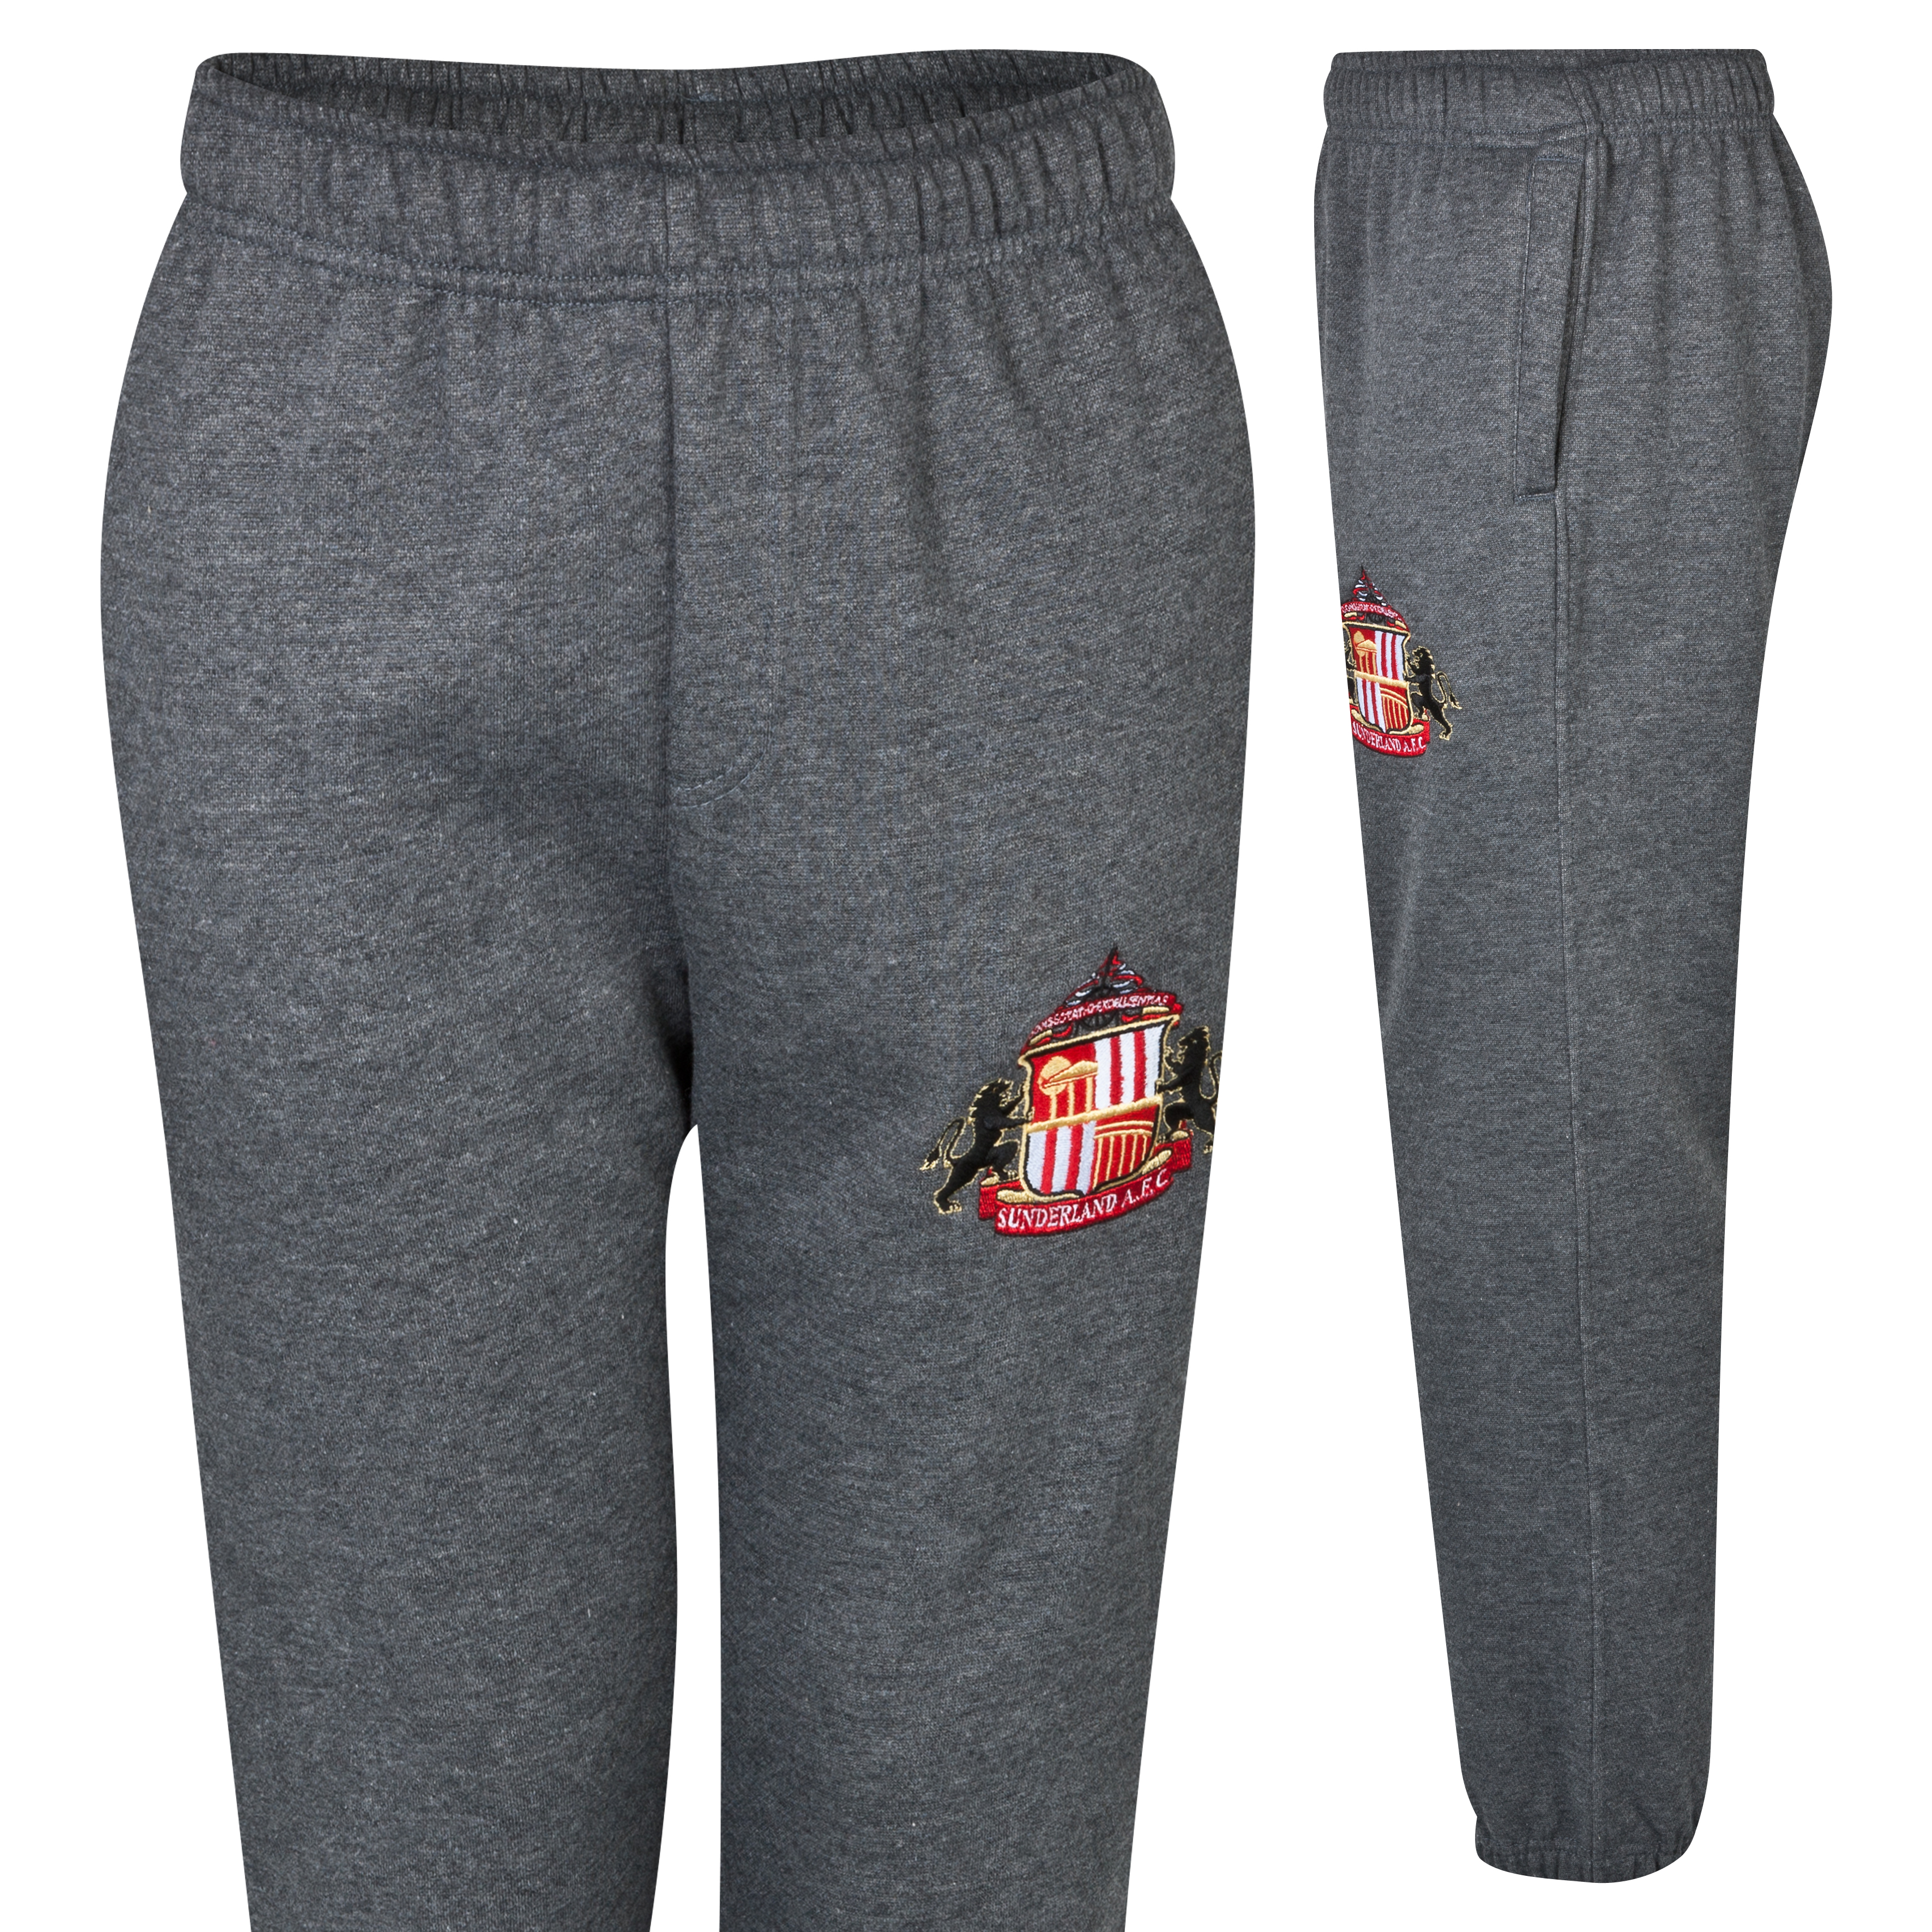 Sunderland Essentials Stride Pants - Older Boys Charcoal